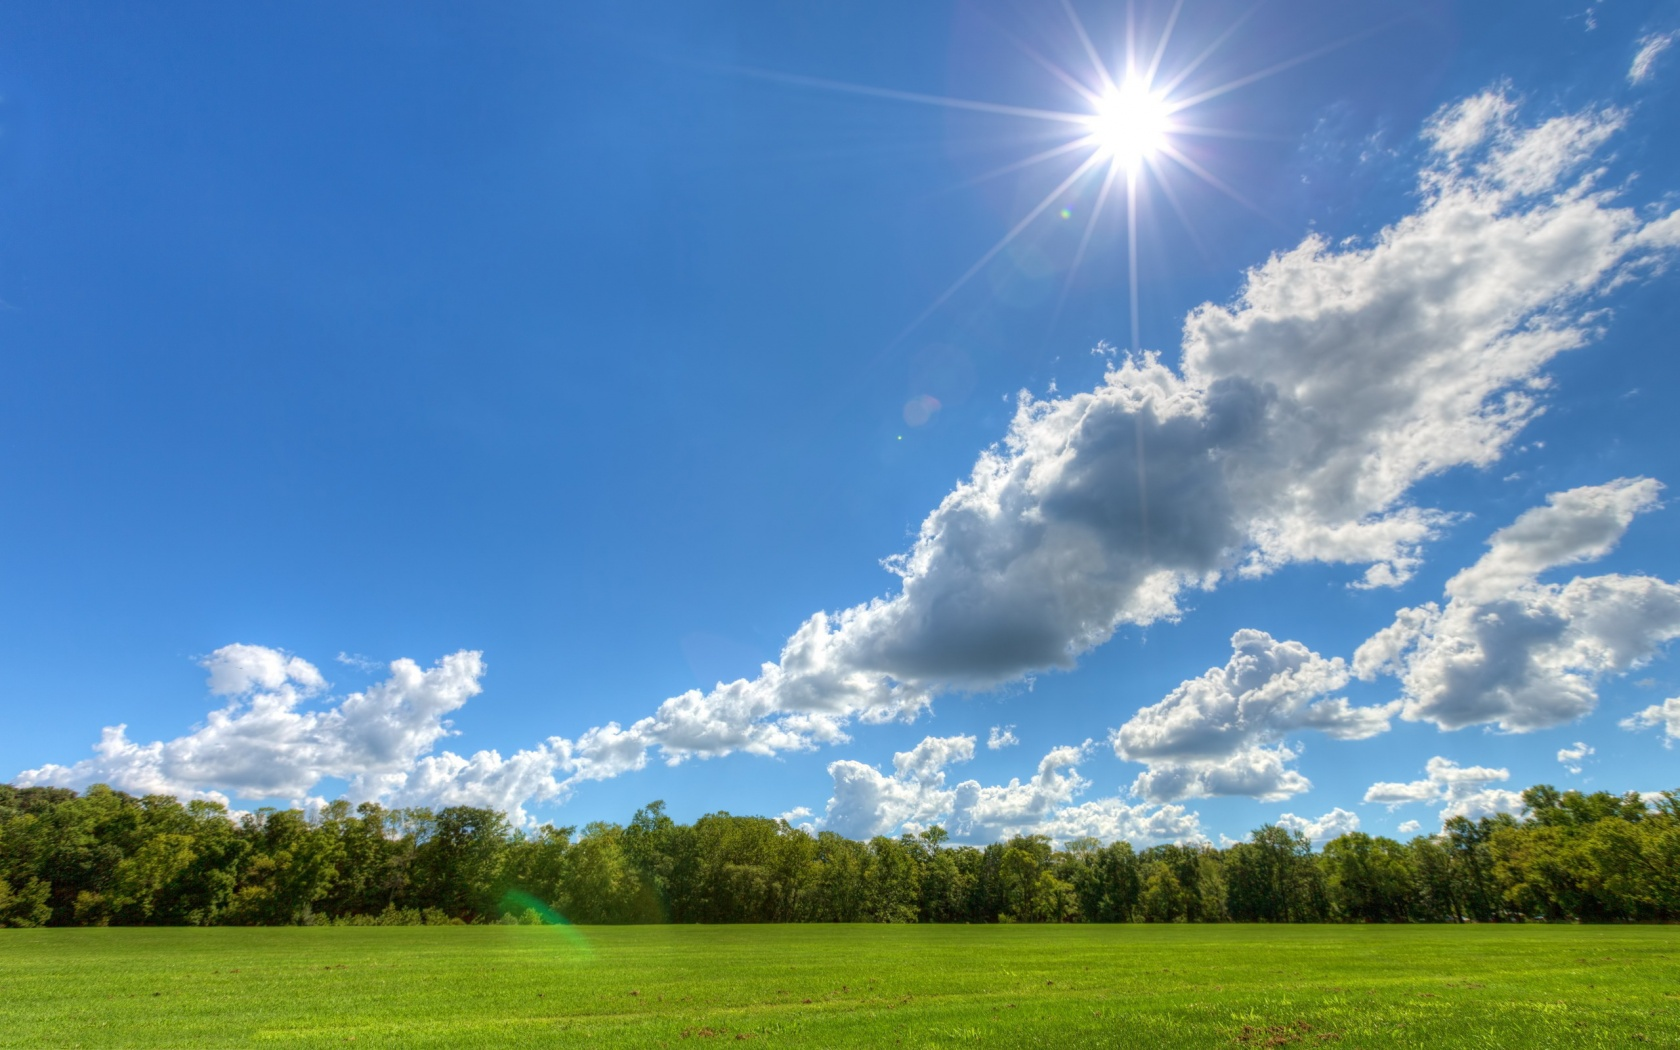 Wide HDQ Pretty Sunny Day Wallpapers 38 BSCB 1680x1050